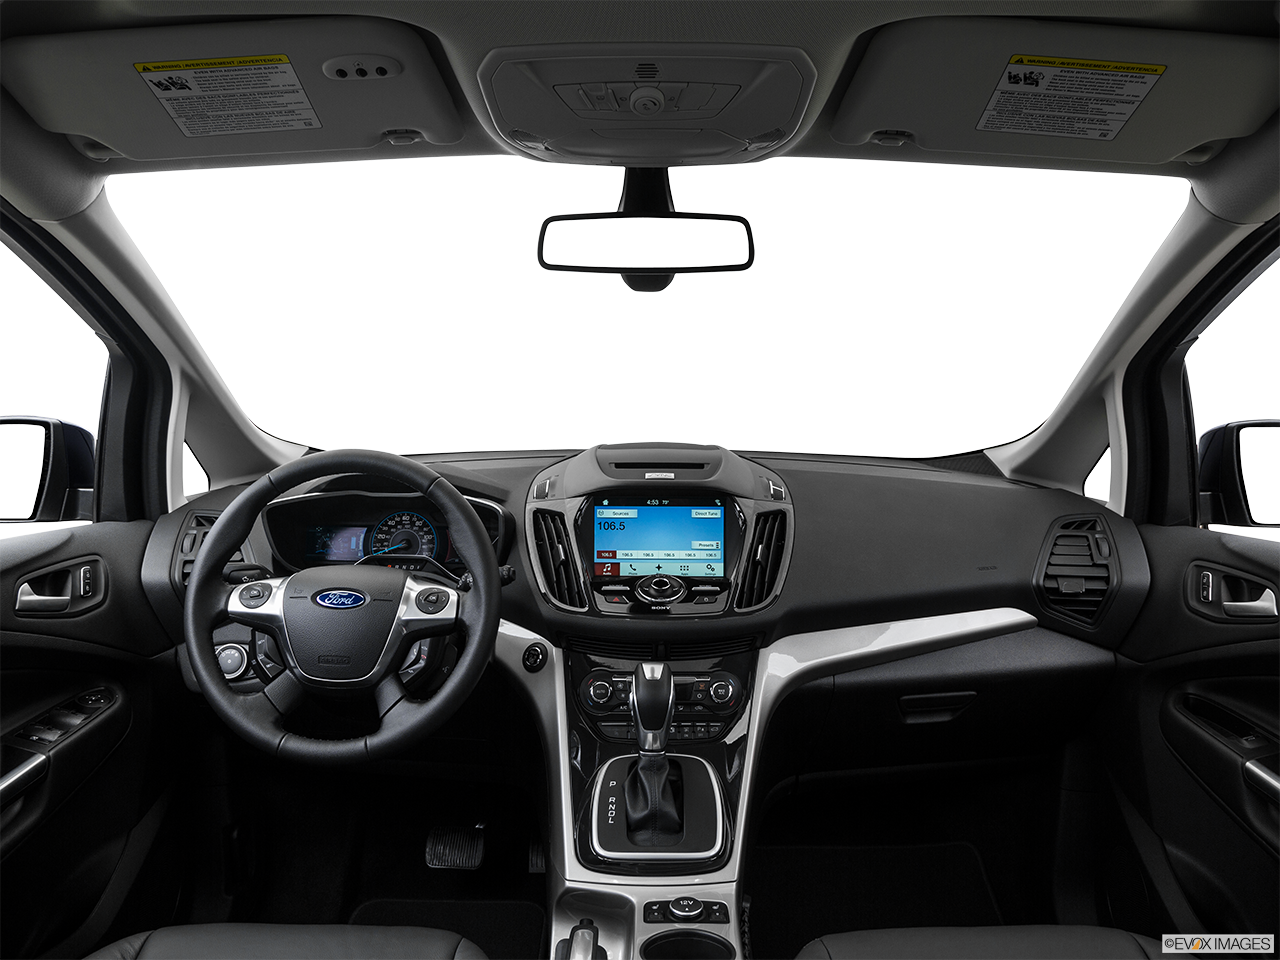 Interior View Of 2016 Ford C-Max Energi in Huntington Beach